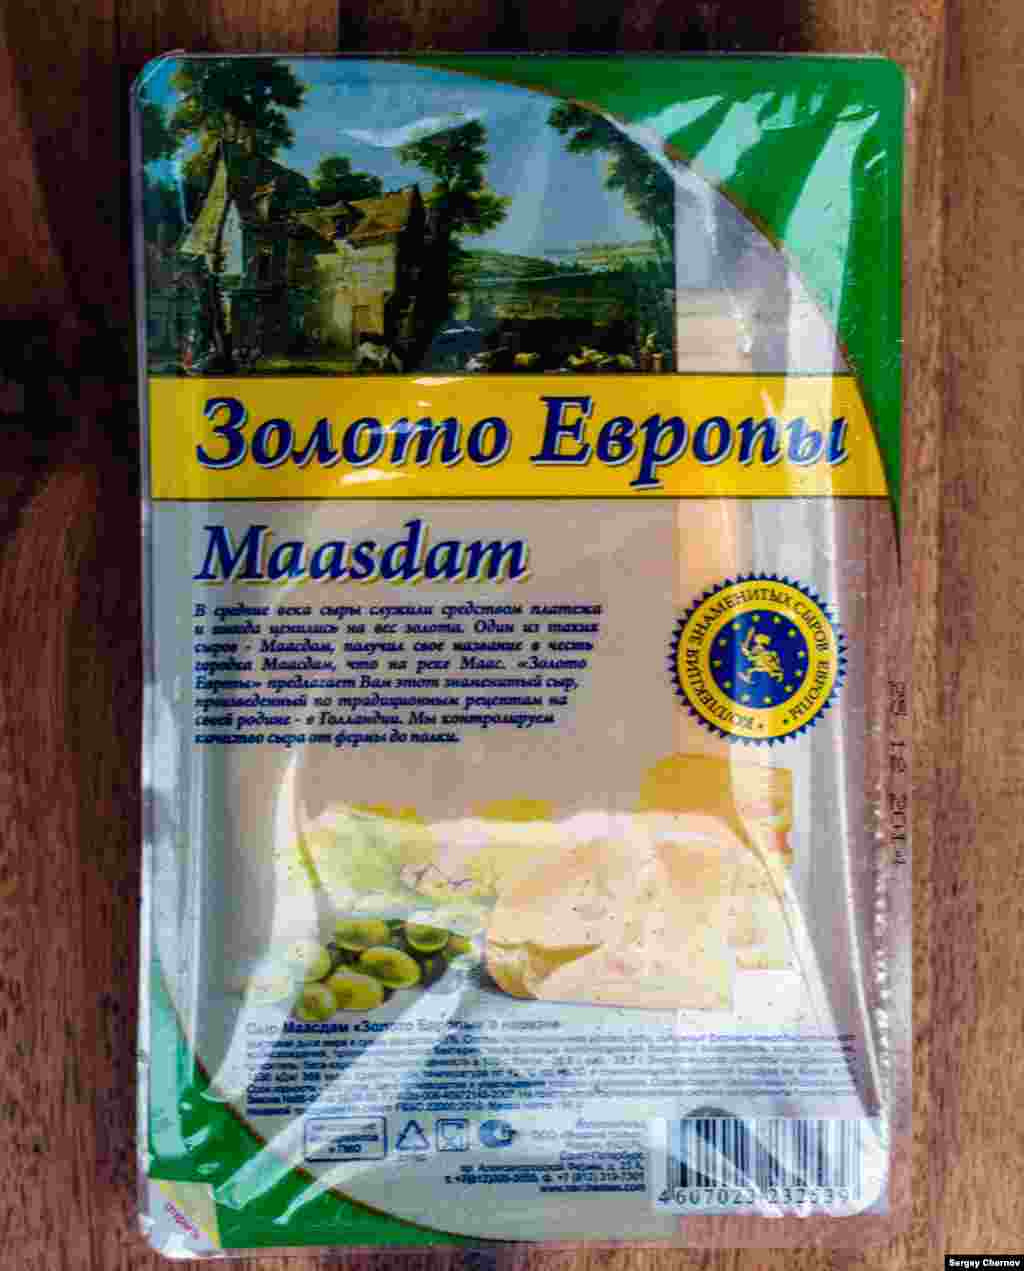 "The Petersburg-based manufacturer Gold of Europe has produced its own variety of Maasdam, a Swiss-style Dutch cheese. A medallion on the packaging advertises it as a member of the ""collection of famous European cheeses."" One taster pronounced the Russian brand ""not first-rate, but edible."""